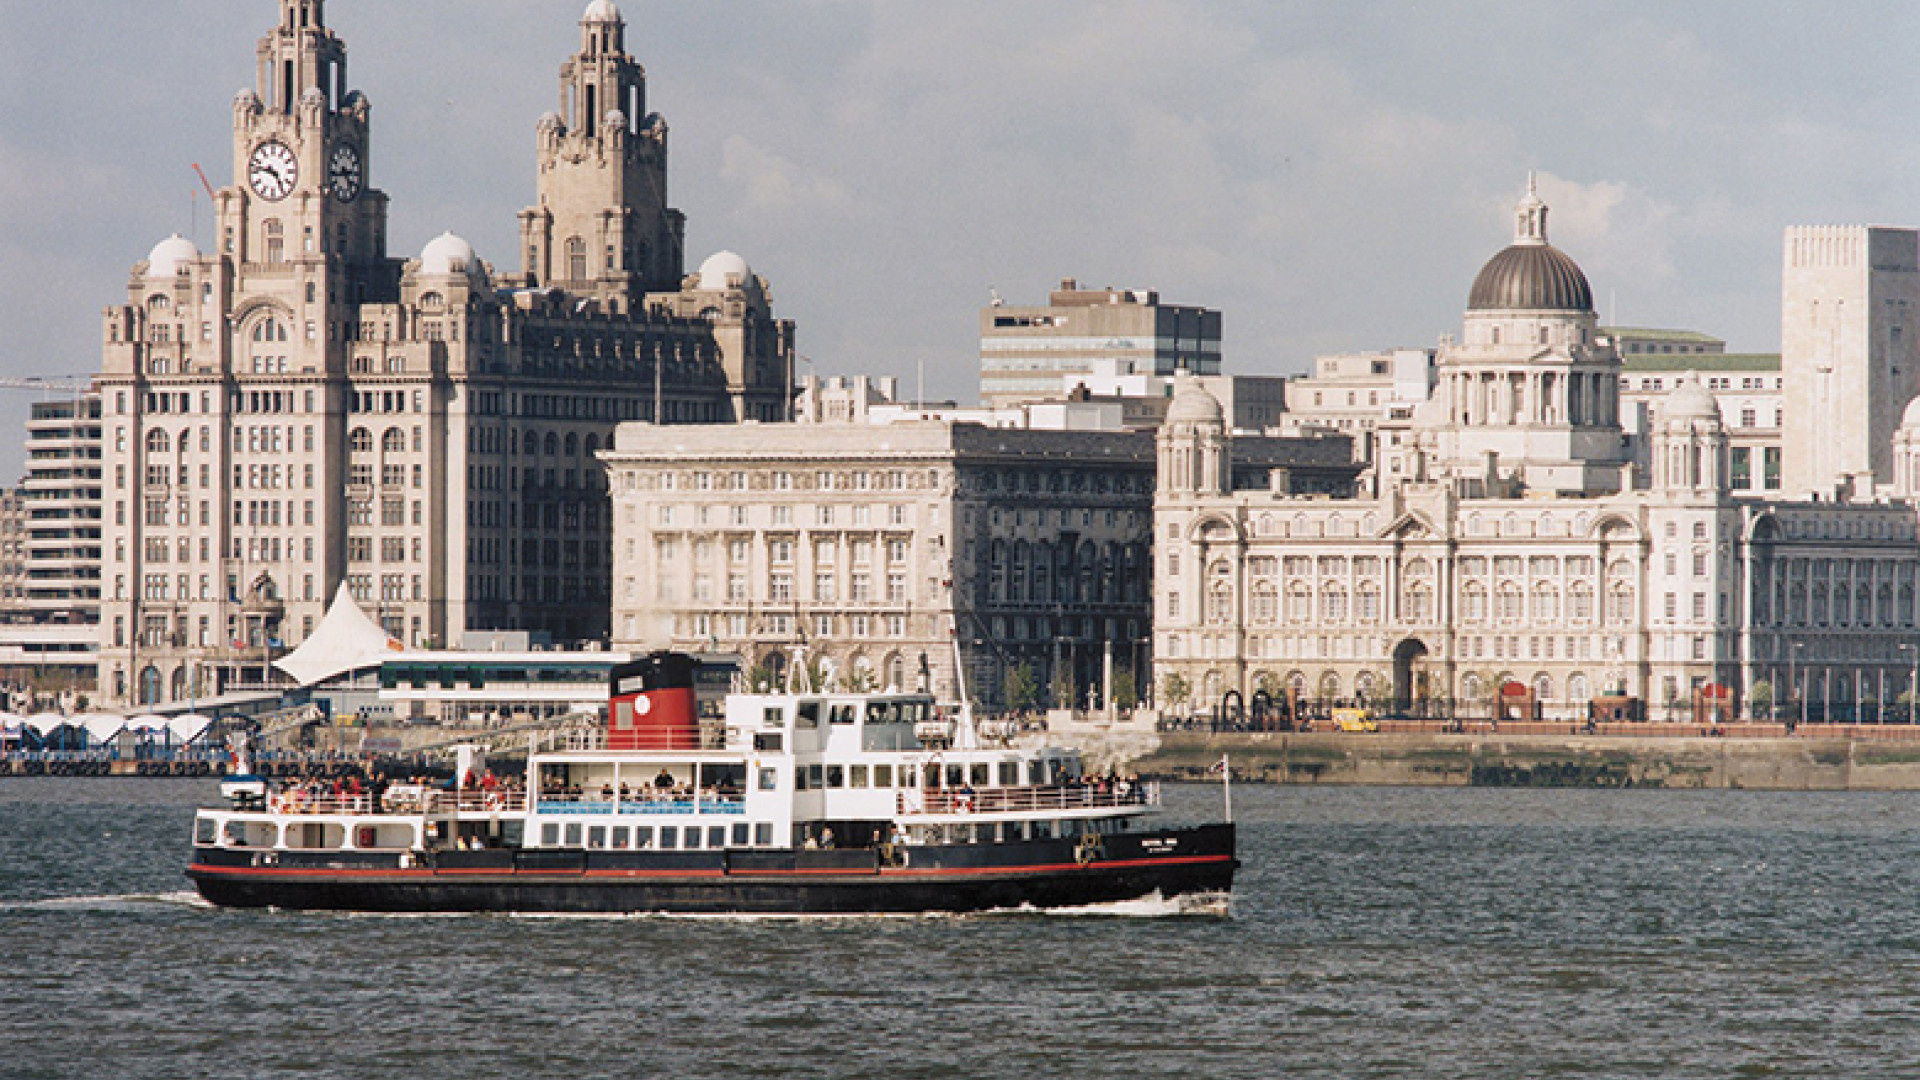 Liverpool's-World-Heritage-Waterfront,-with-Mersey-Ferry-in-foreground